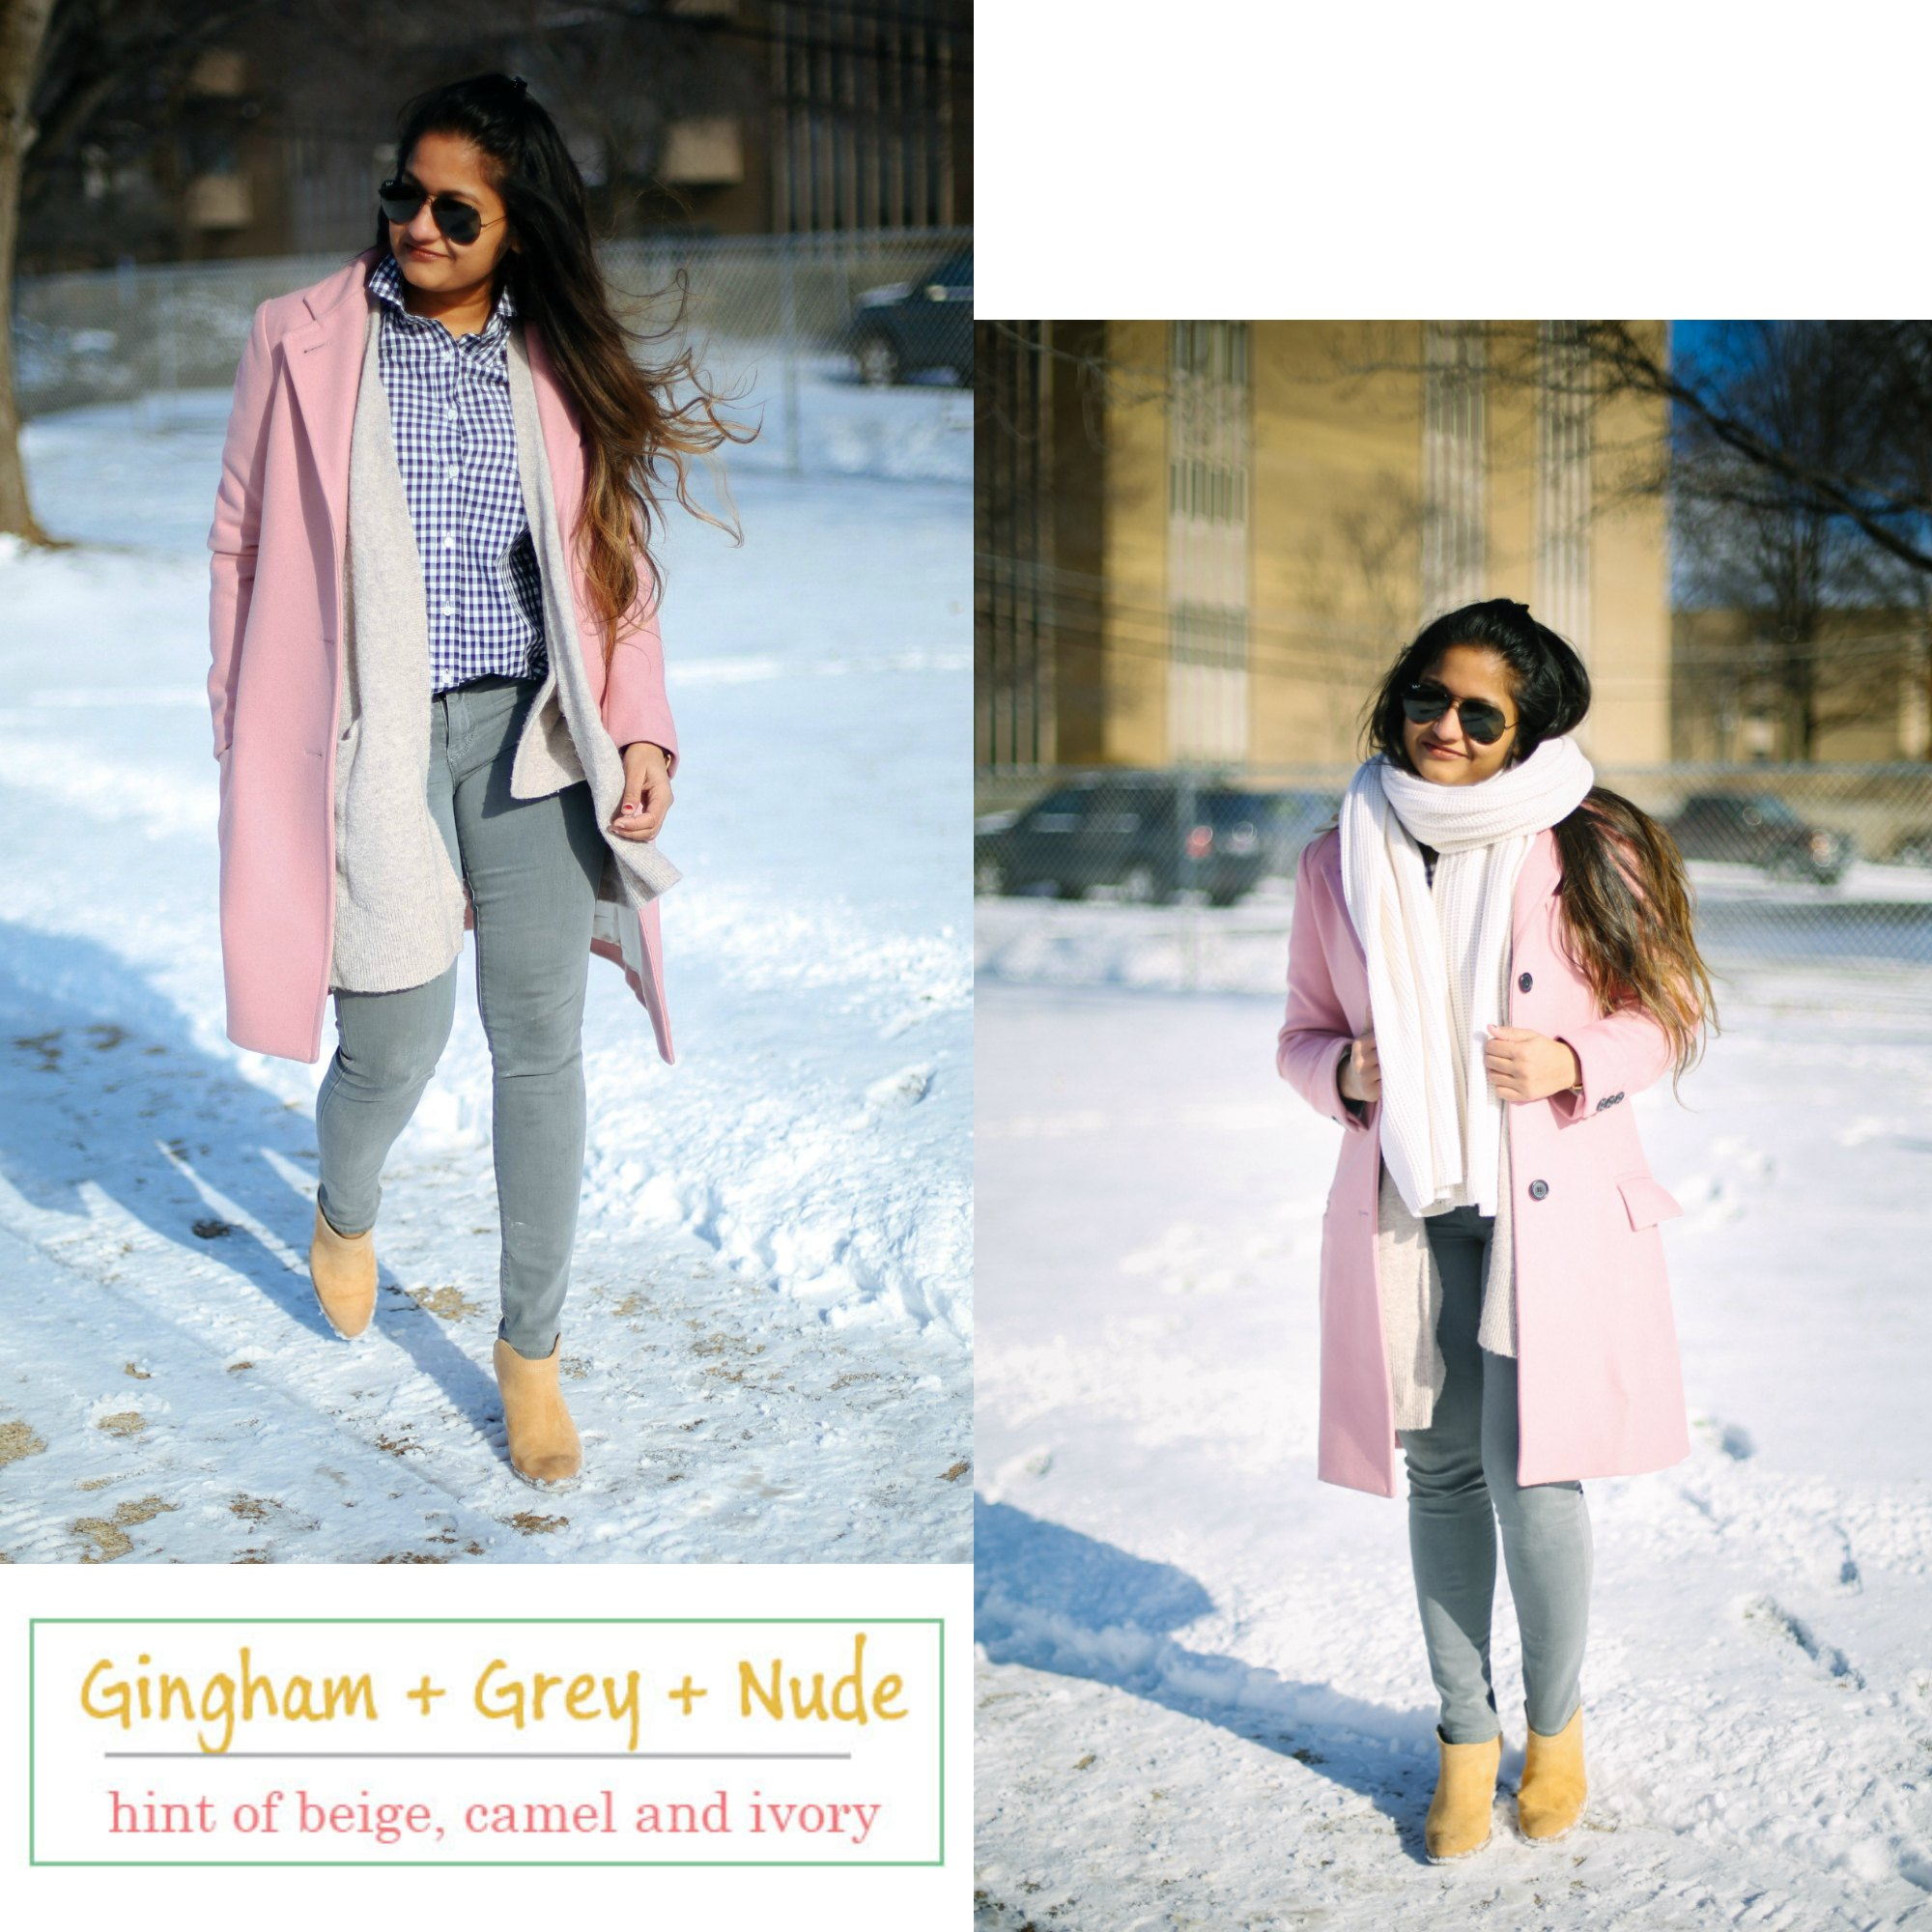 6-winter-neutral-color-combinations-you-should-try-1